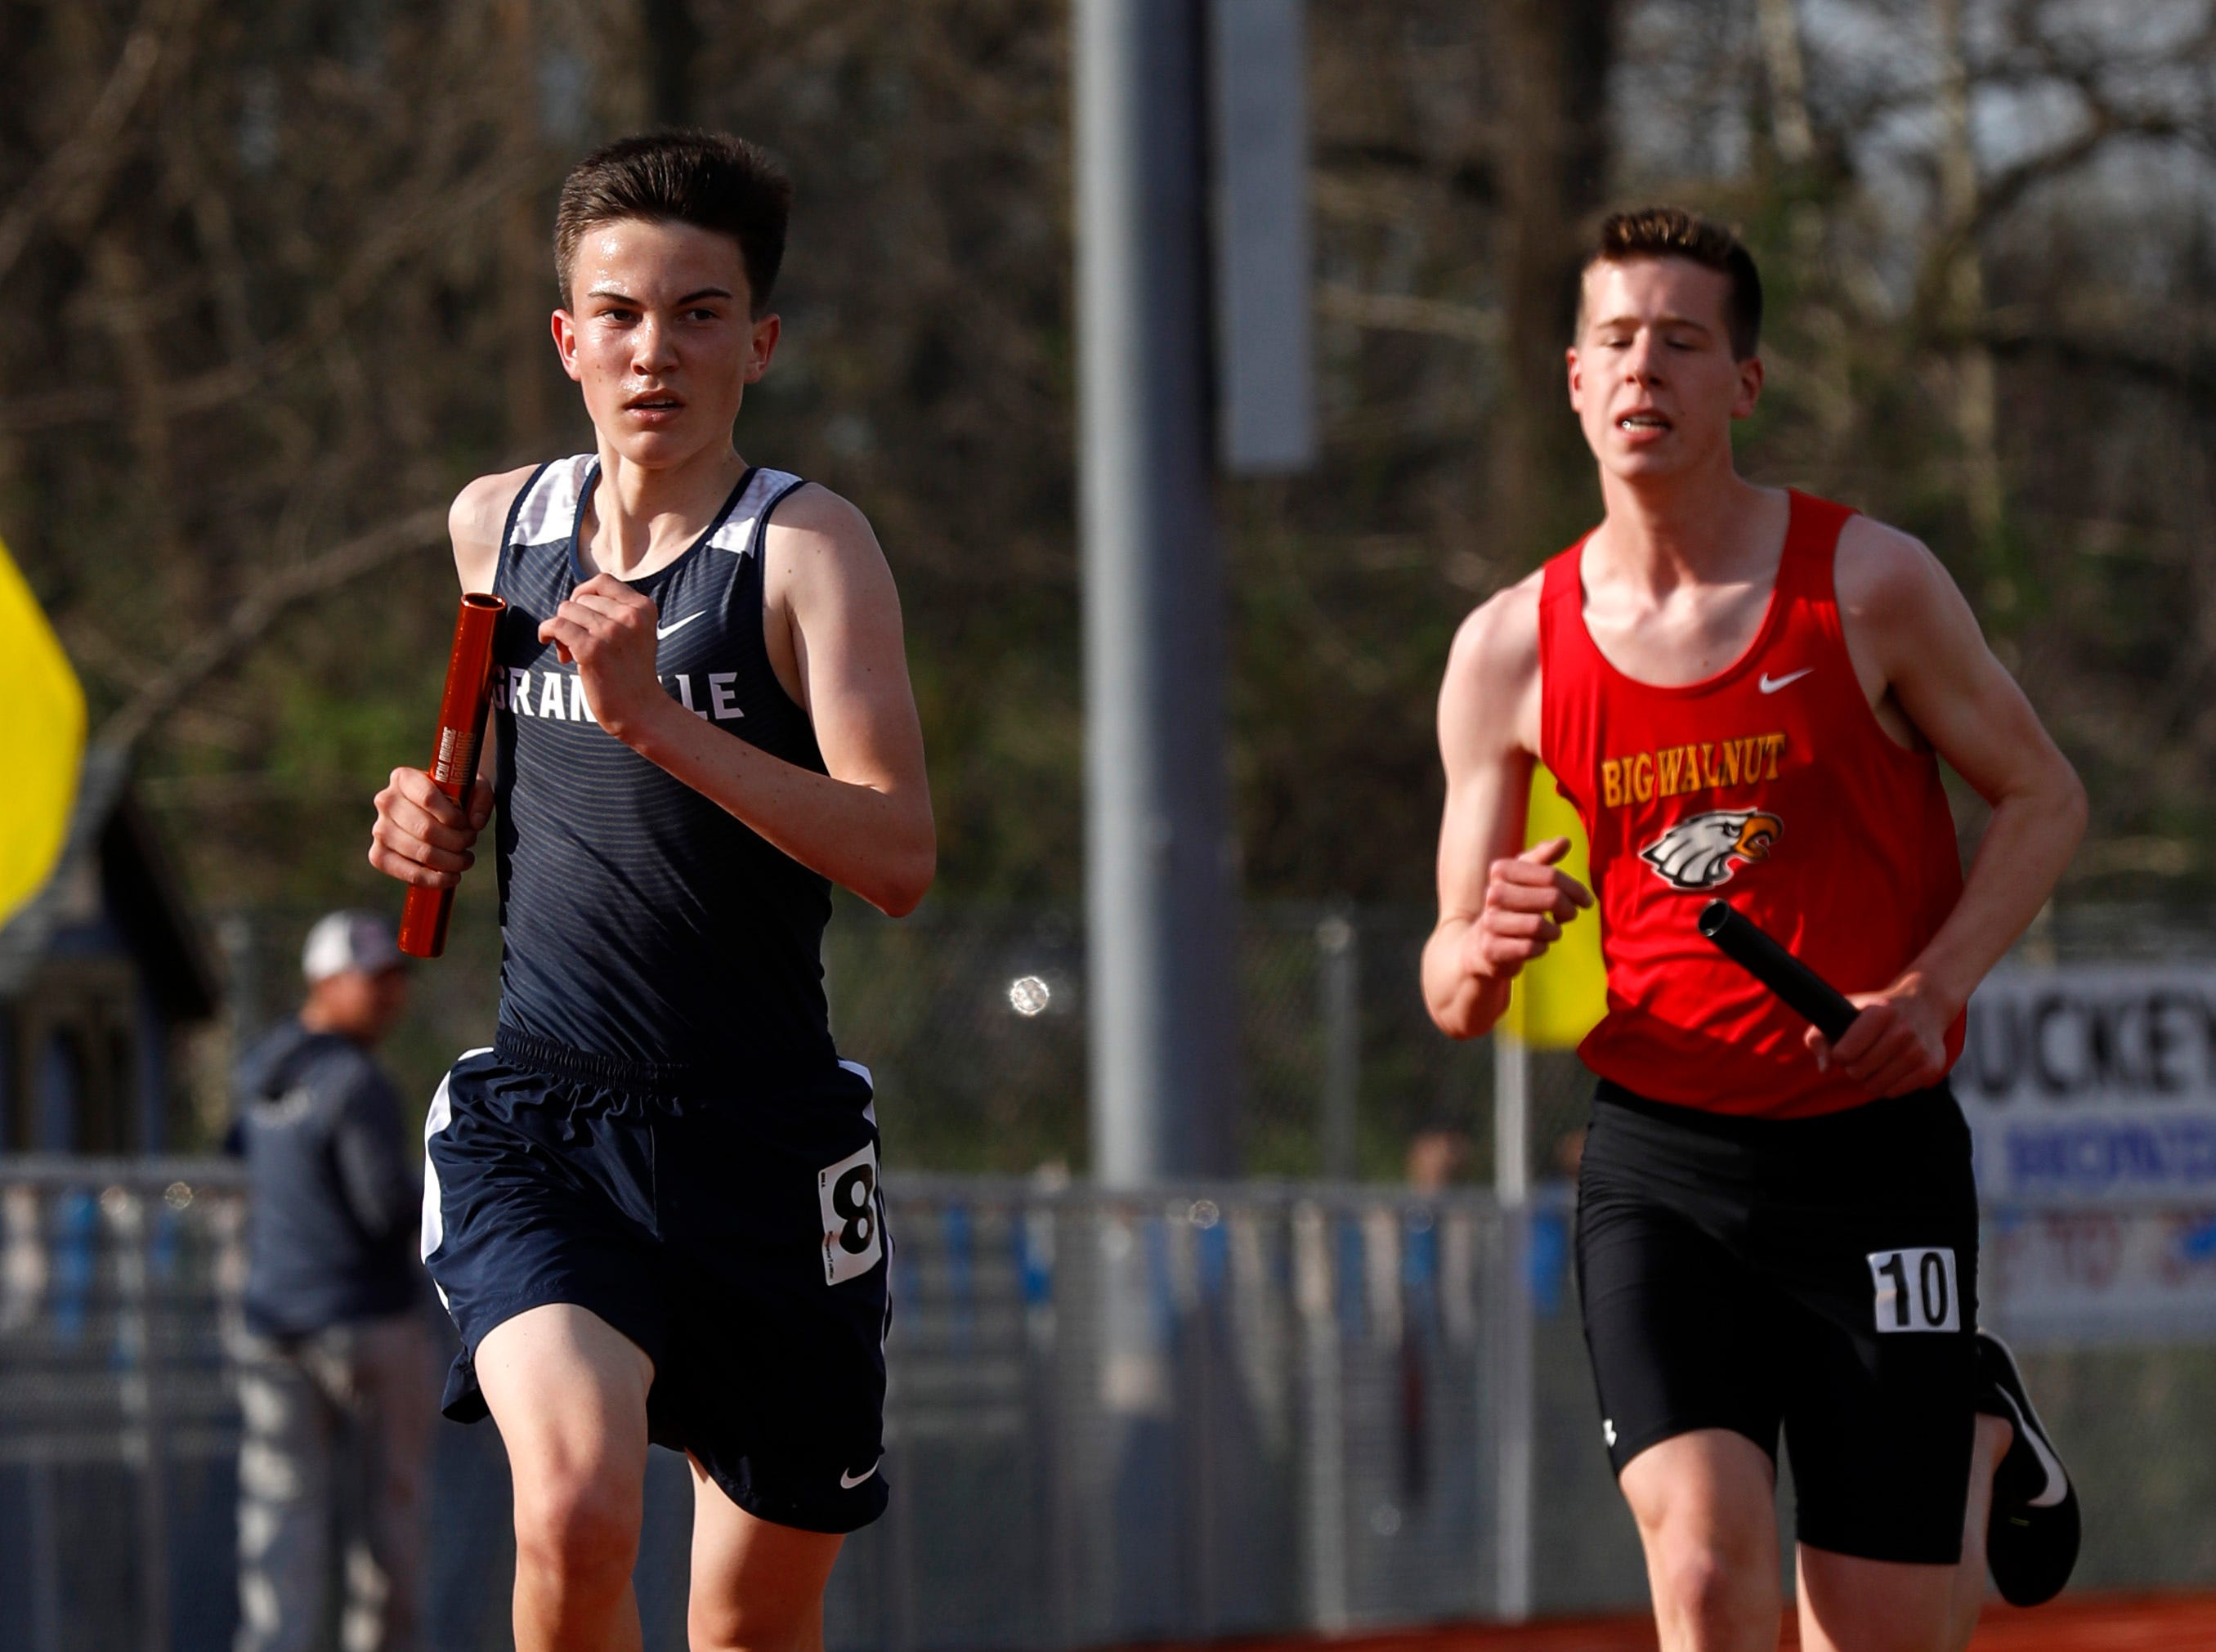 Lancaster, Watkins Memorial and Granville were among the teams the took part in the 53rd annual Fulton Relays Thursday, April 18, 2019, at Lancaster High School in Lancaster.